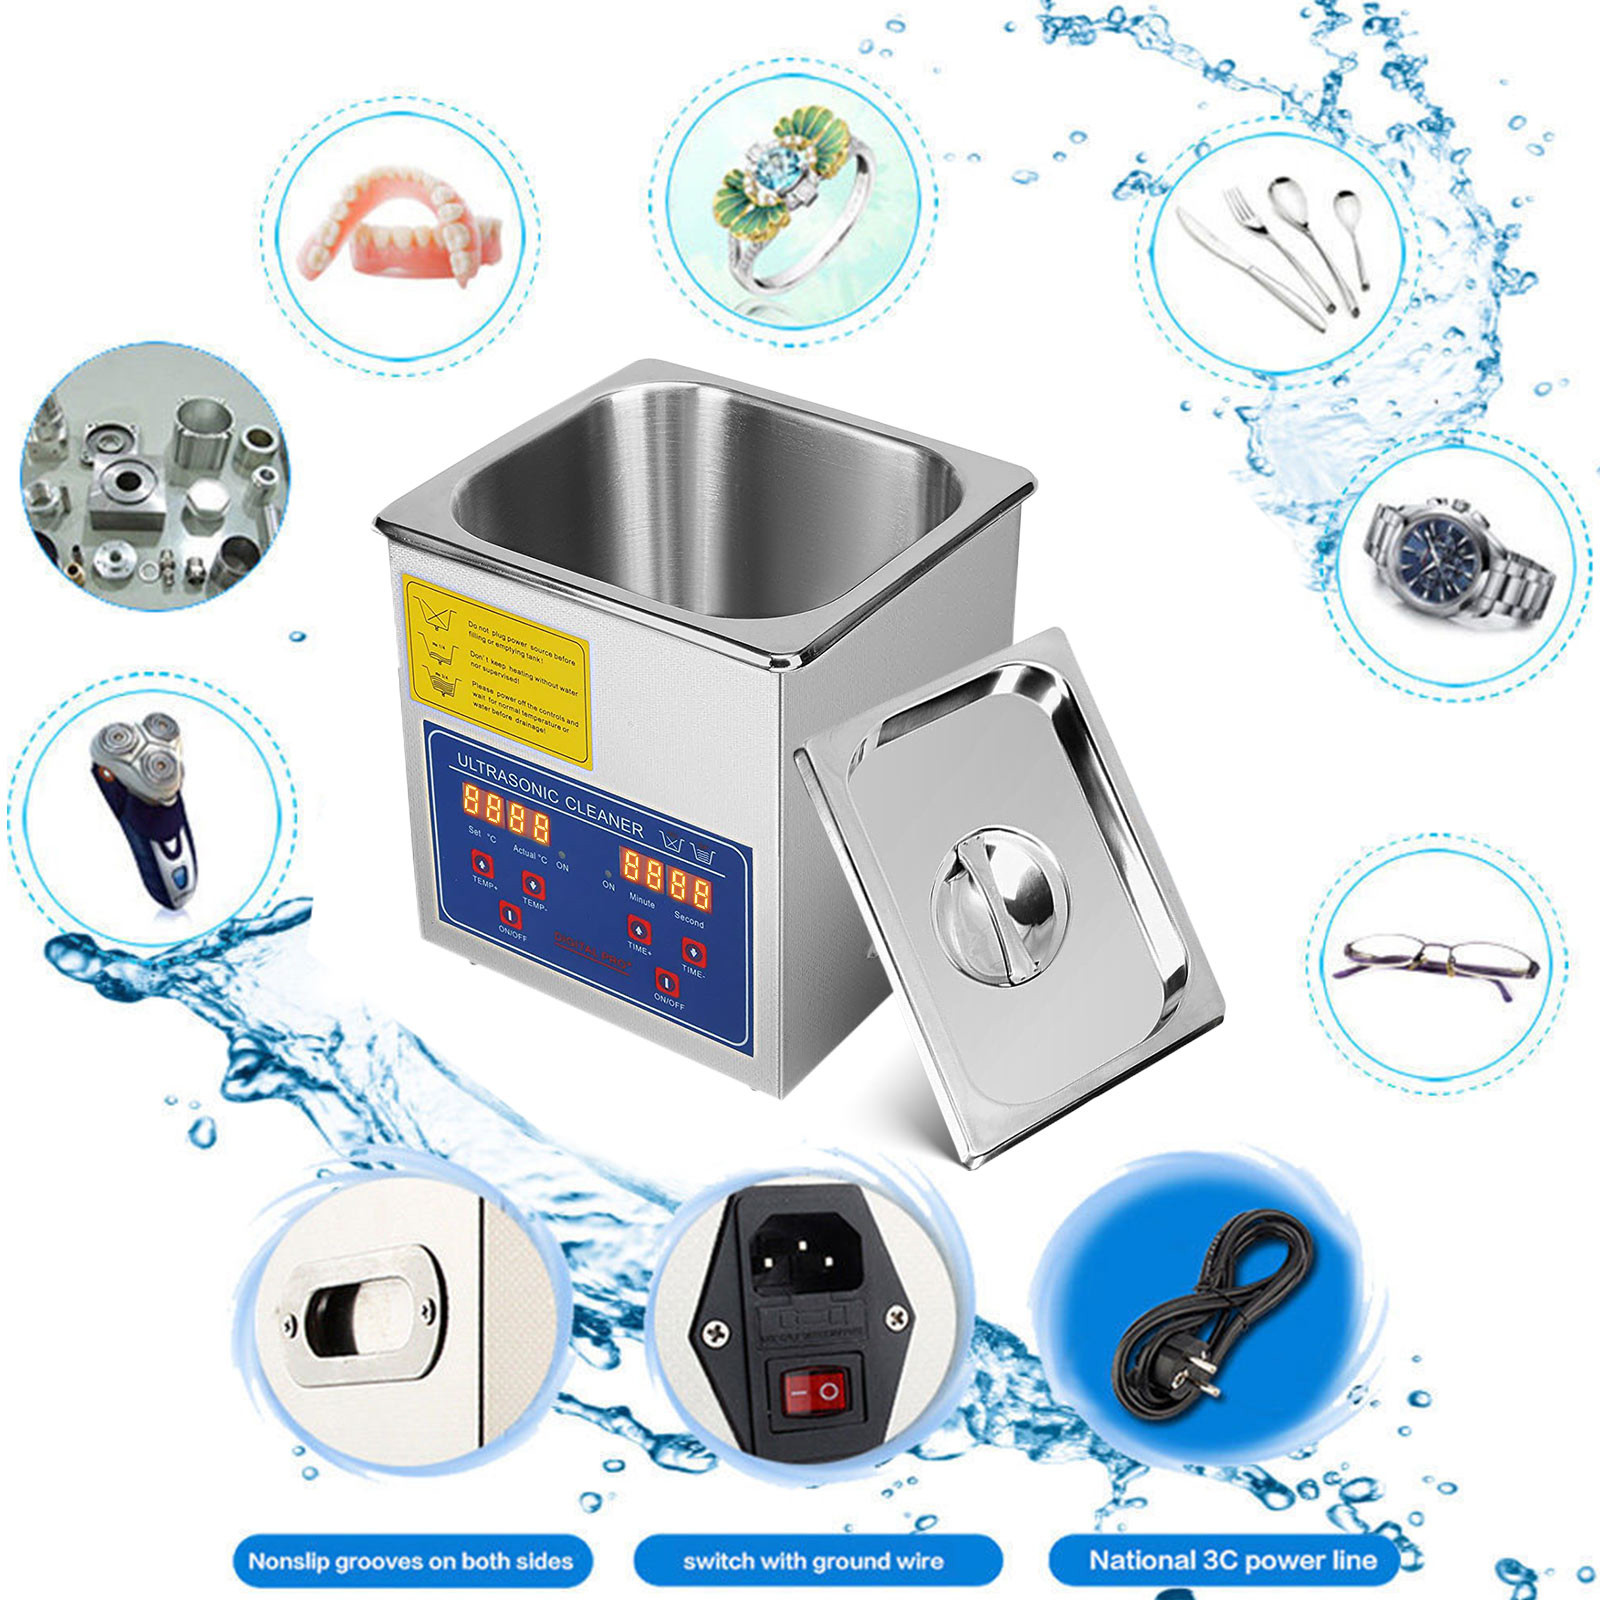 Multi-Ultrasonic-Cleaner-Supplies-Jewelry-1-3-2L-3L-6L-10L-15L-22L-30L thumbnail 23